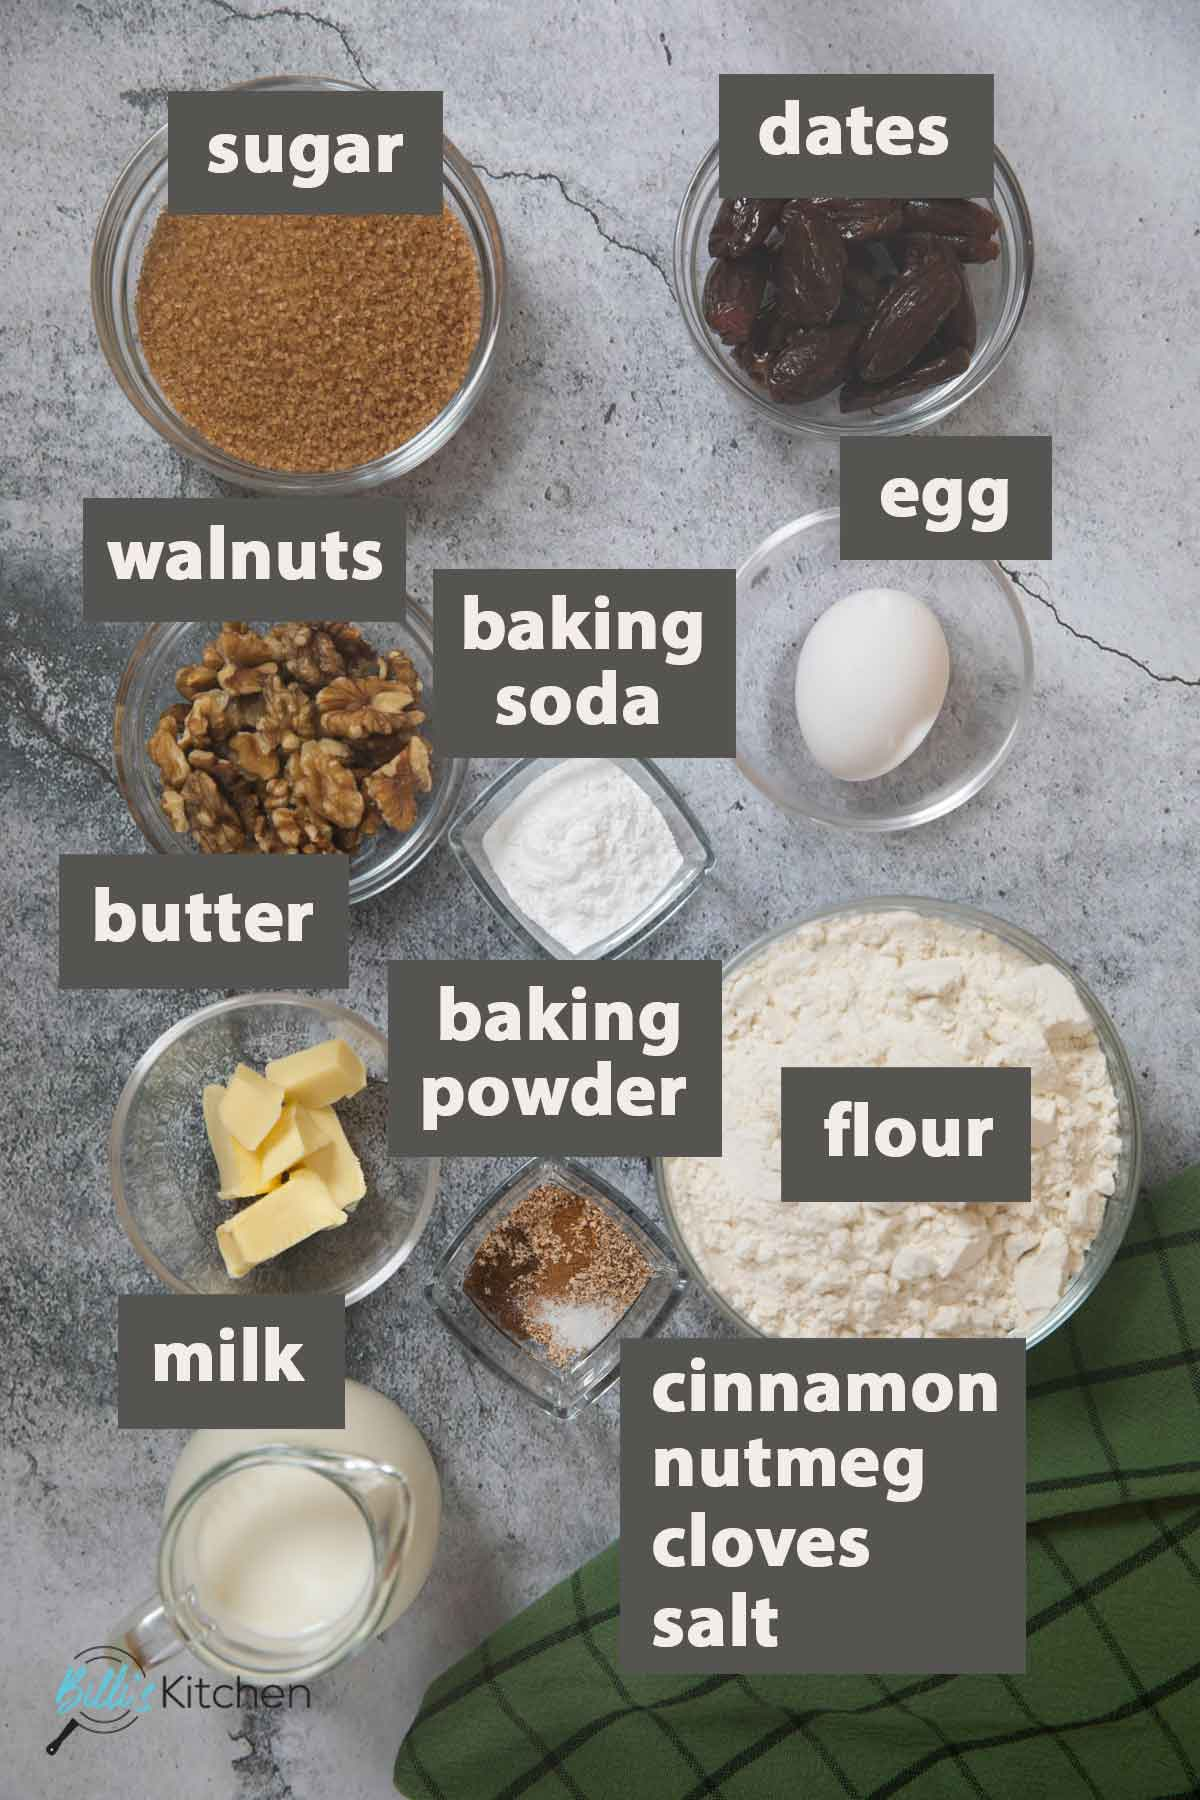 An image showing all the ingredients you need to prepare Spiced Date-Nut Bread.